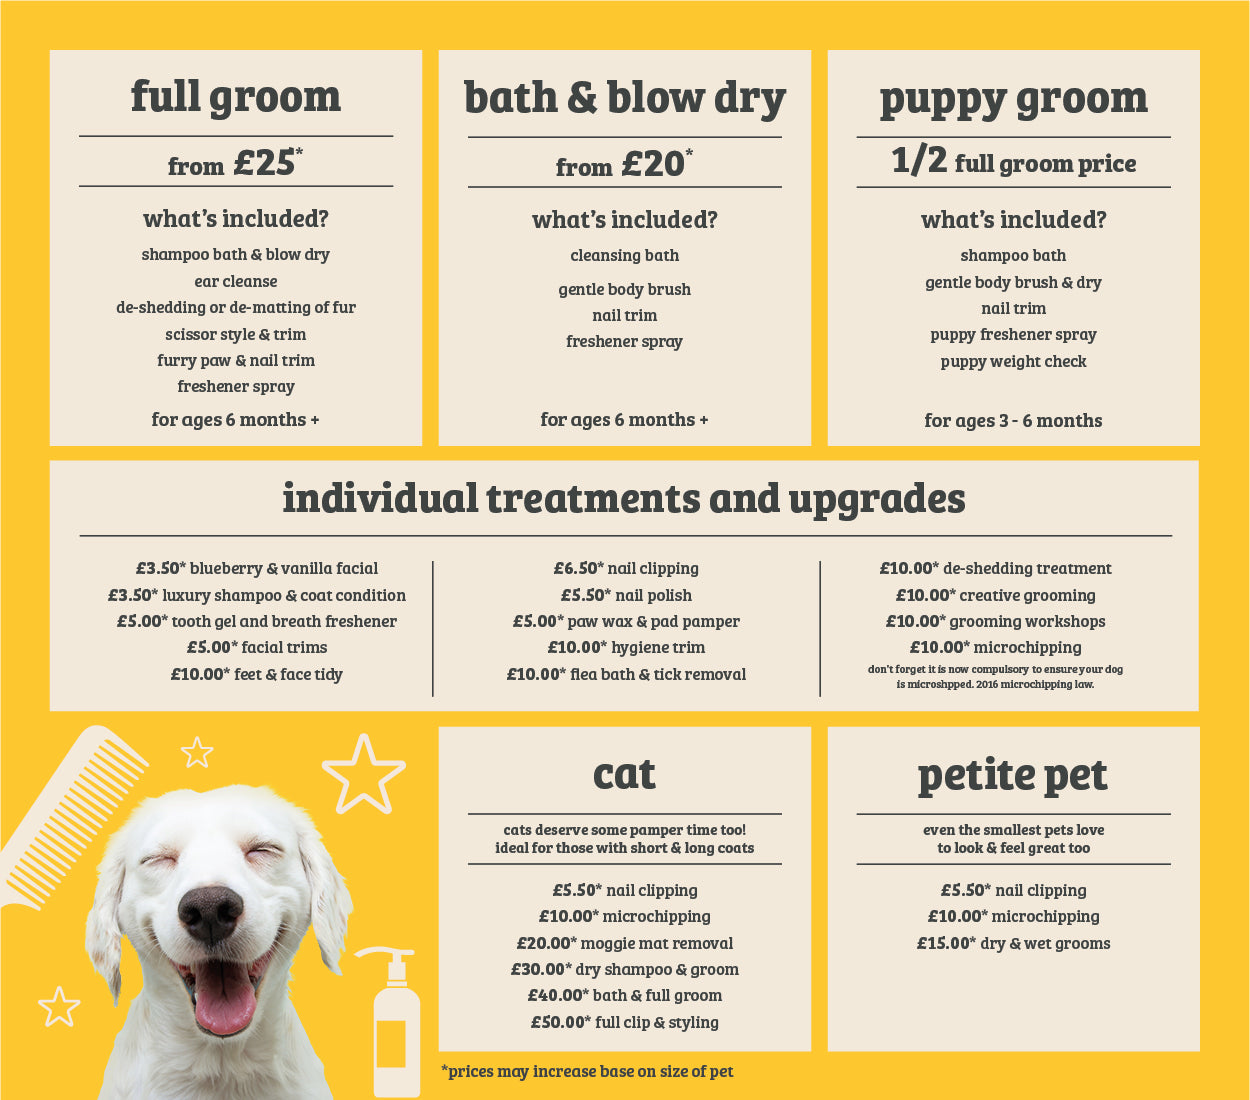 salon grooming prices